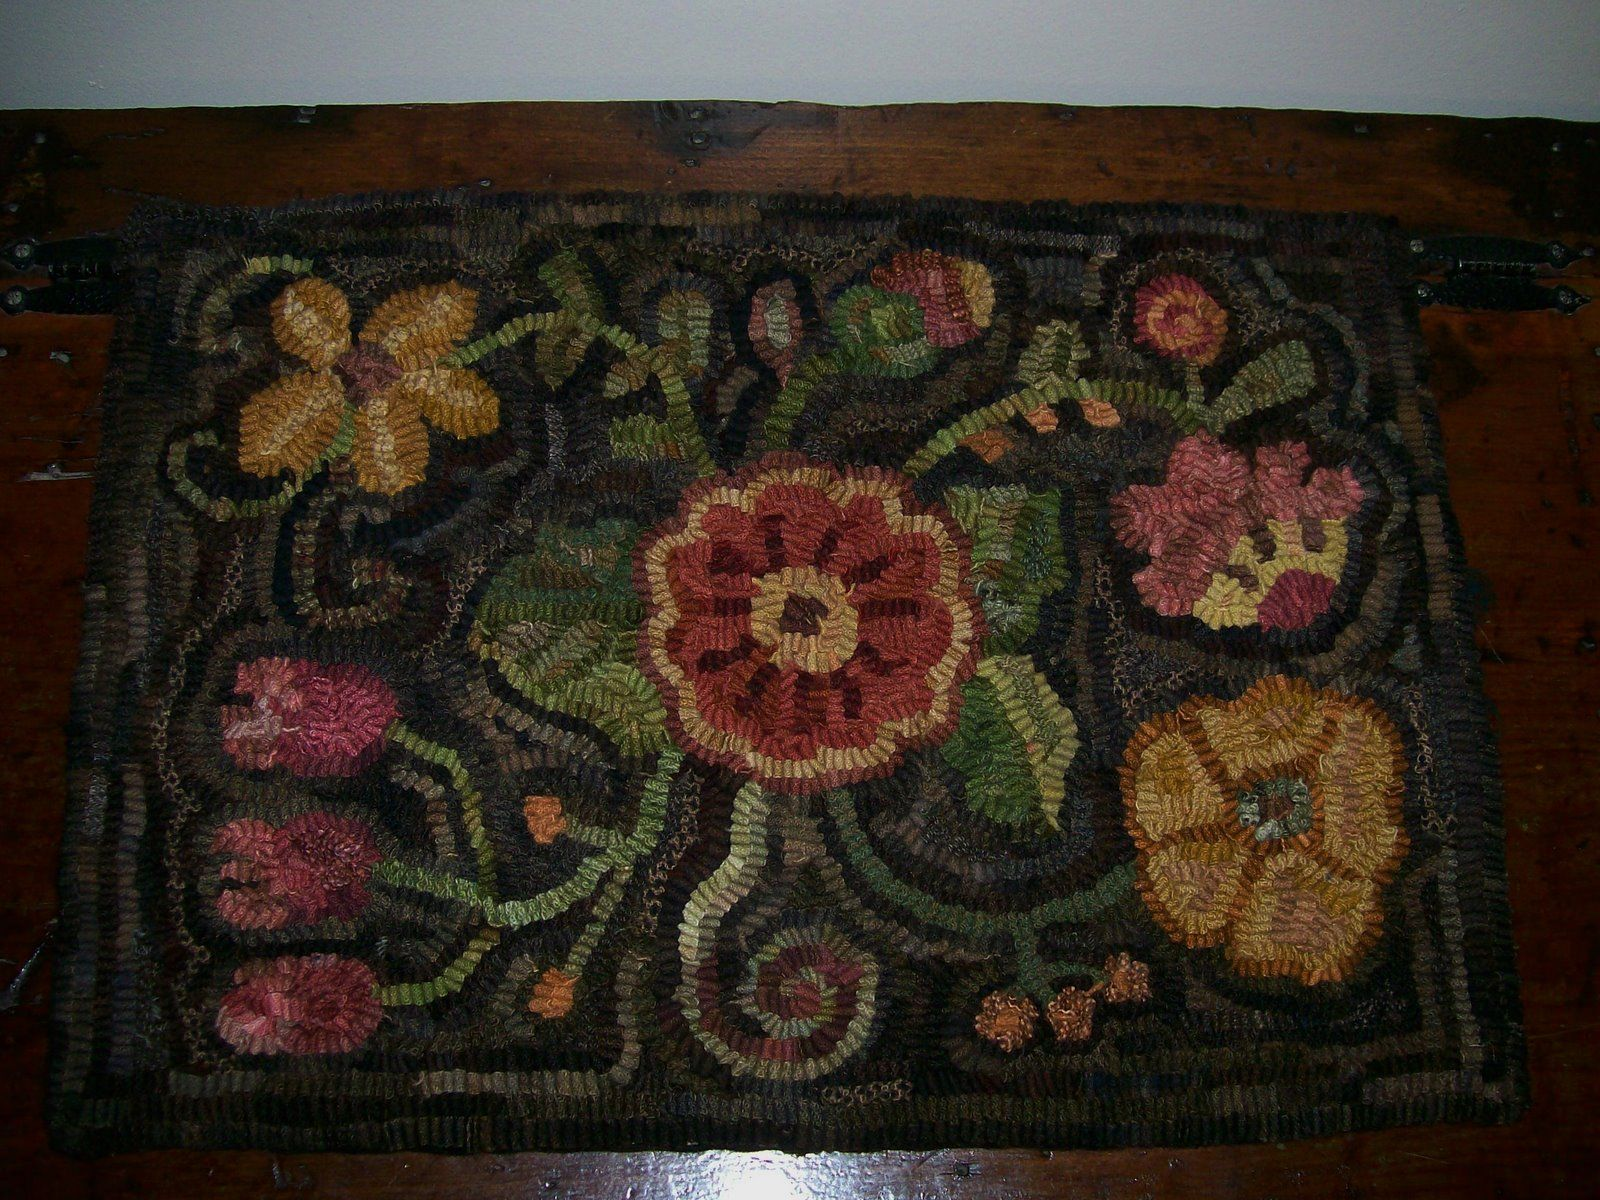 A Primitive Floral I hooked a couple of years ago. Hooked on Primitives.  http://hookedonprimitives.blogspot.com/